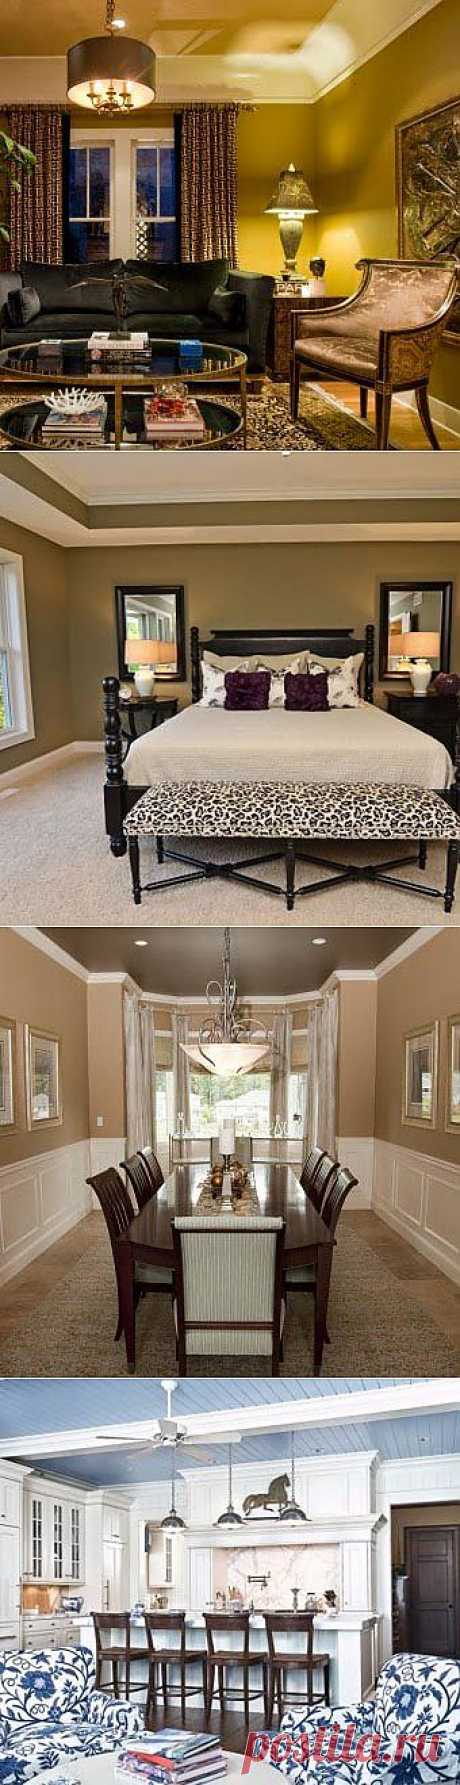 12 design ideas for a ceiling - we Learn to Do All to Sami